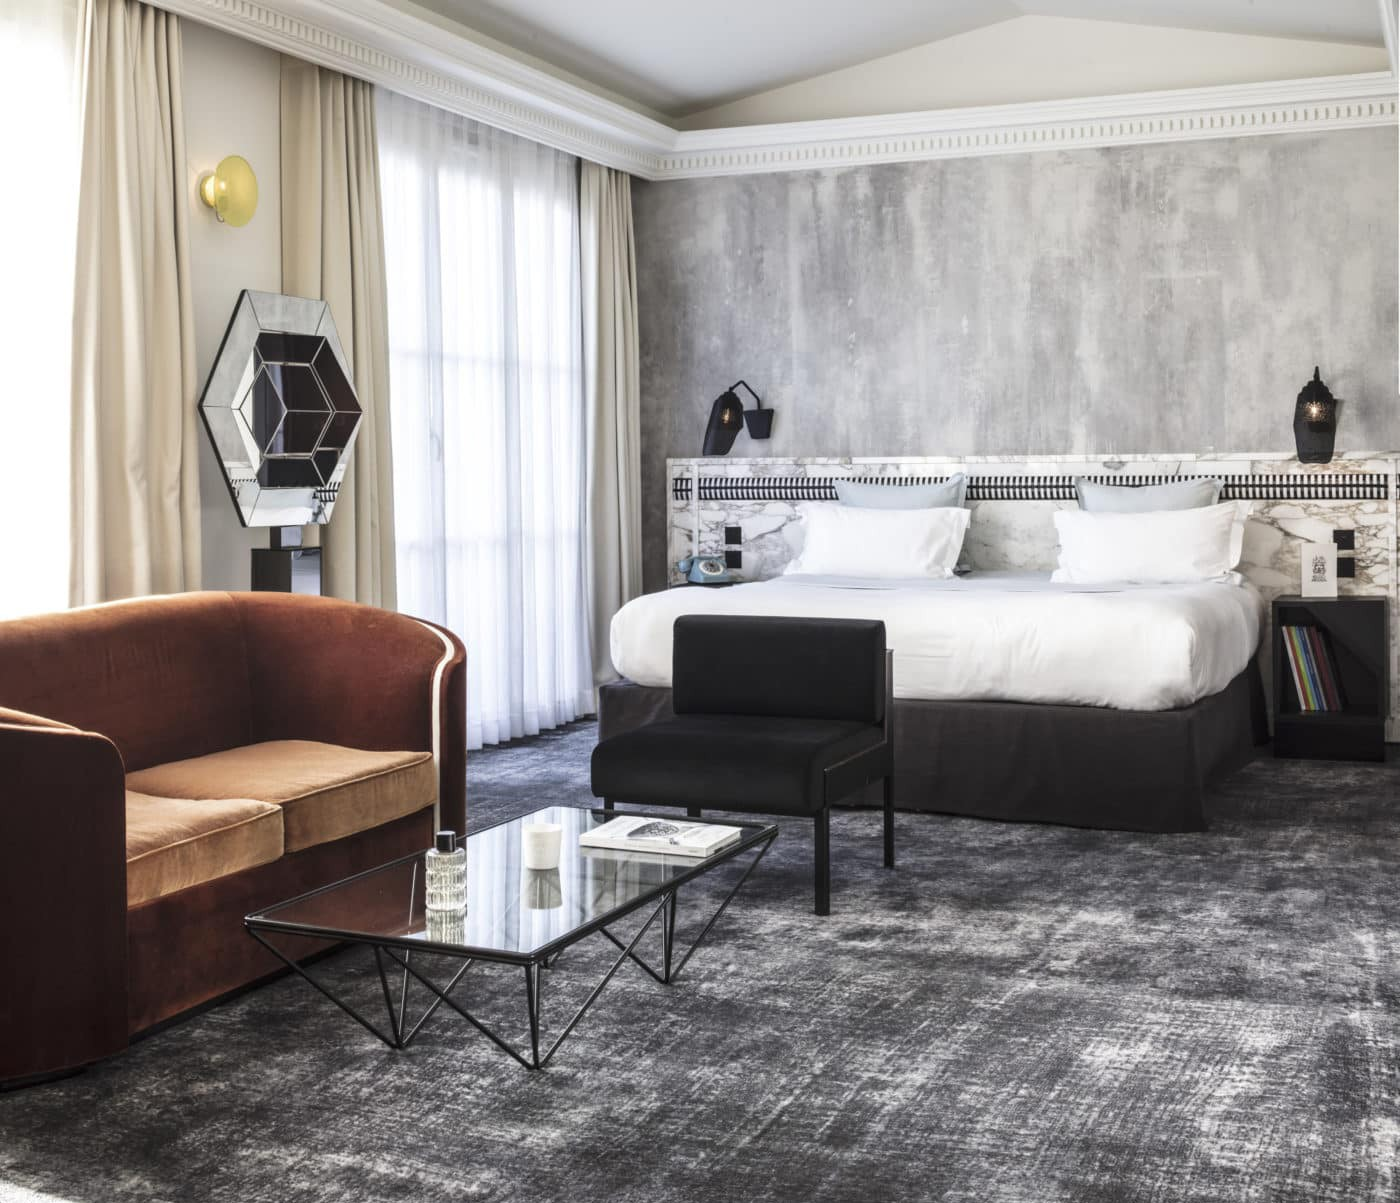 Les Bains nods to its heritage in the retro-chic interiors